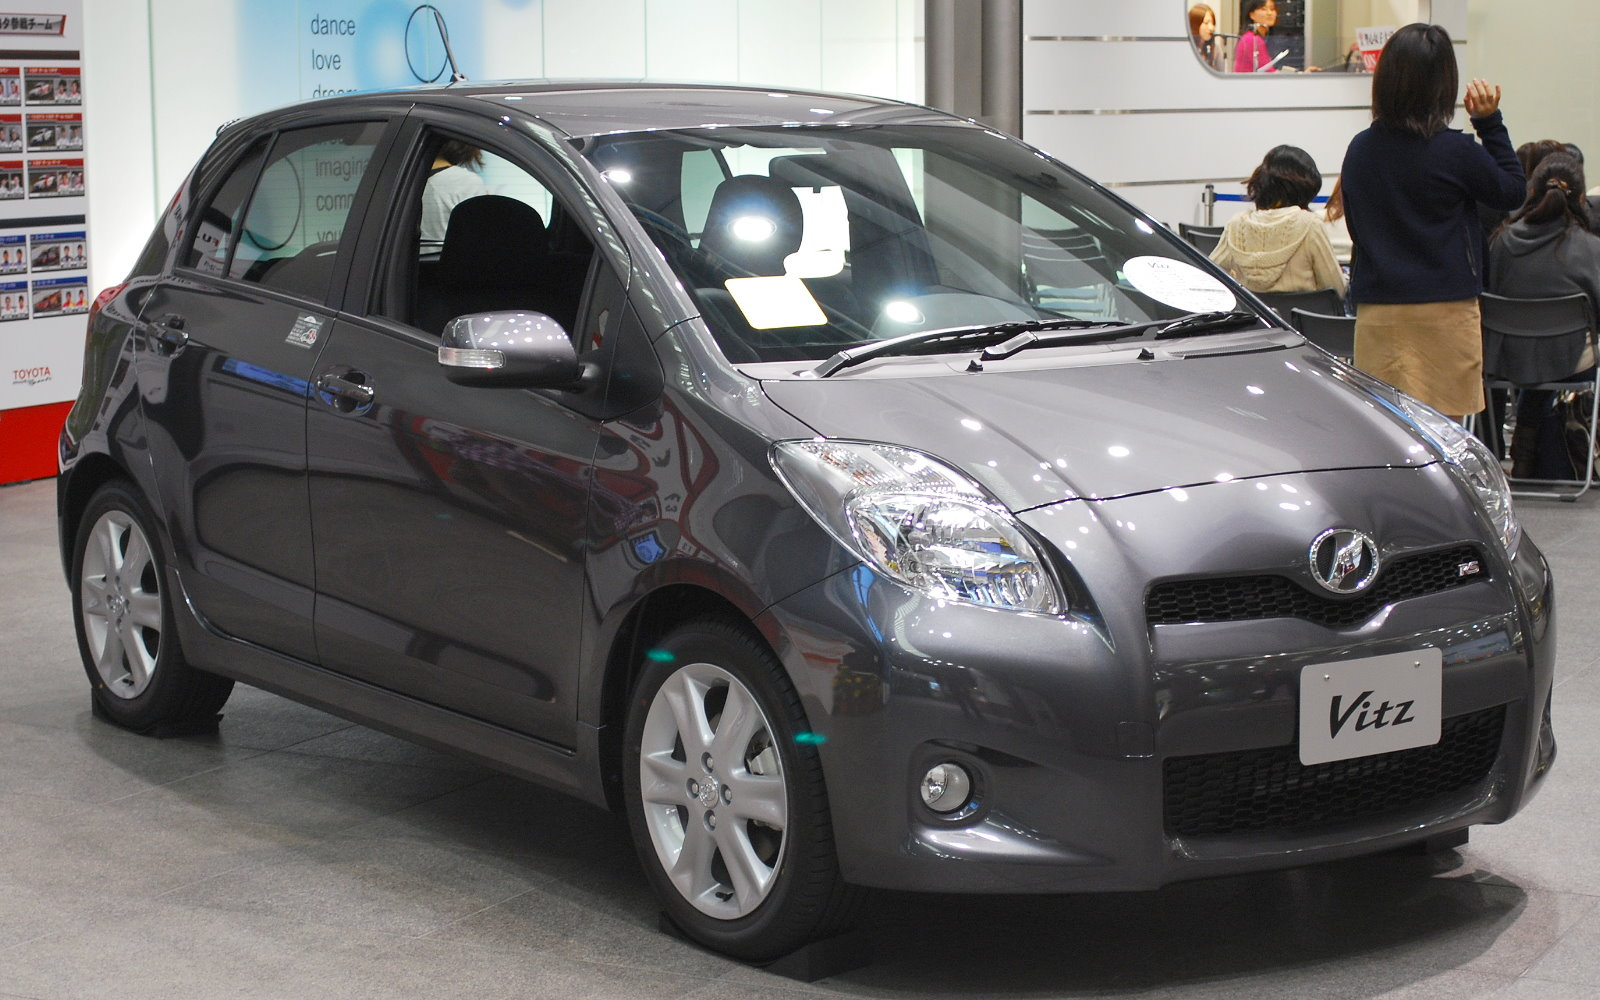 file2008 toyota vitz 01jpg wikimedia commons